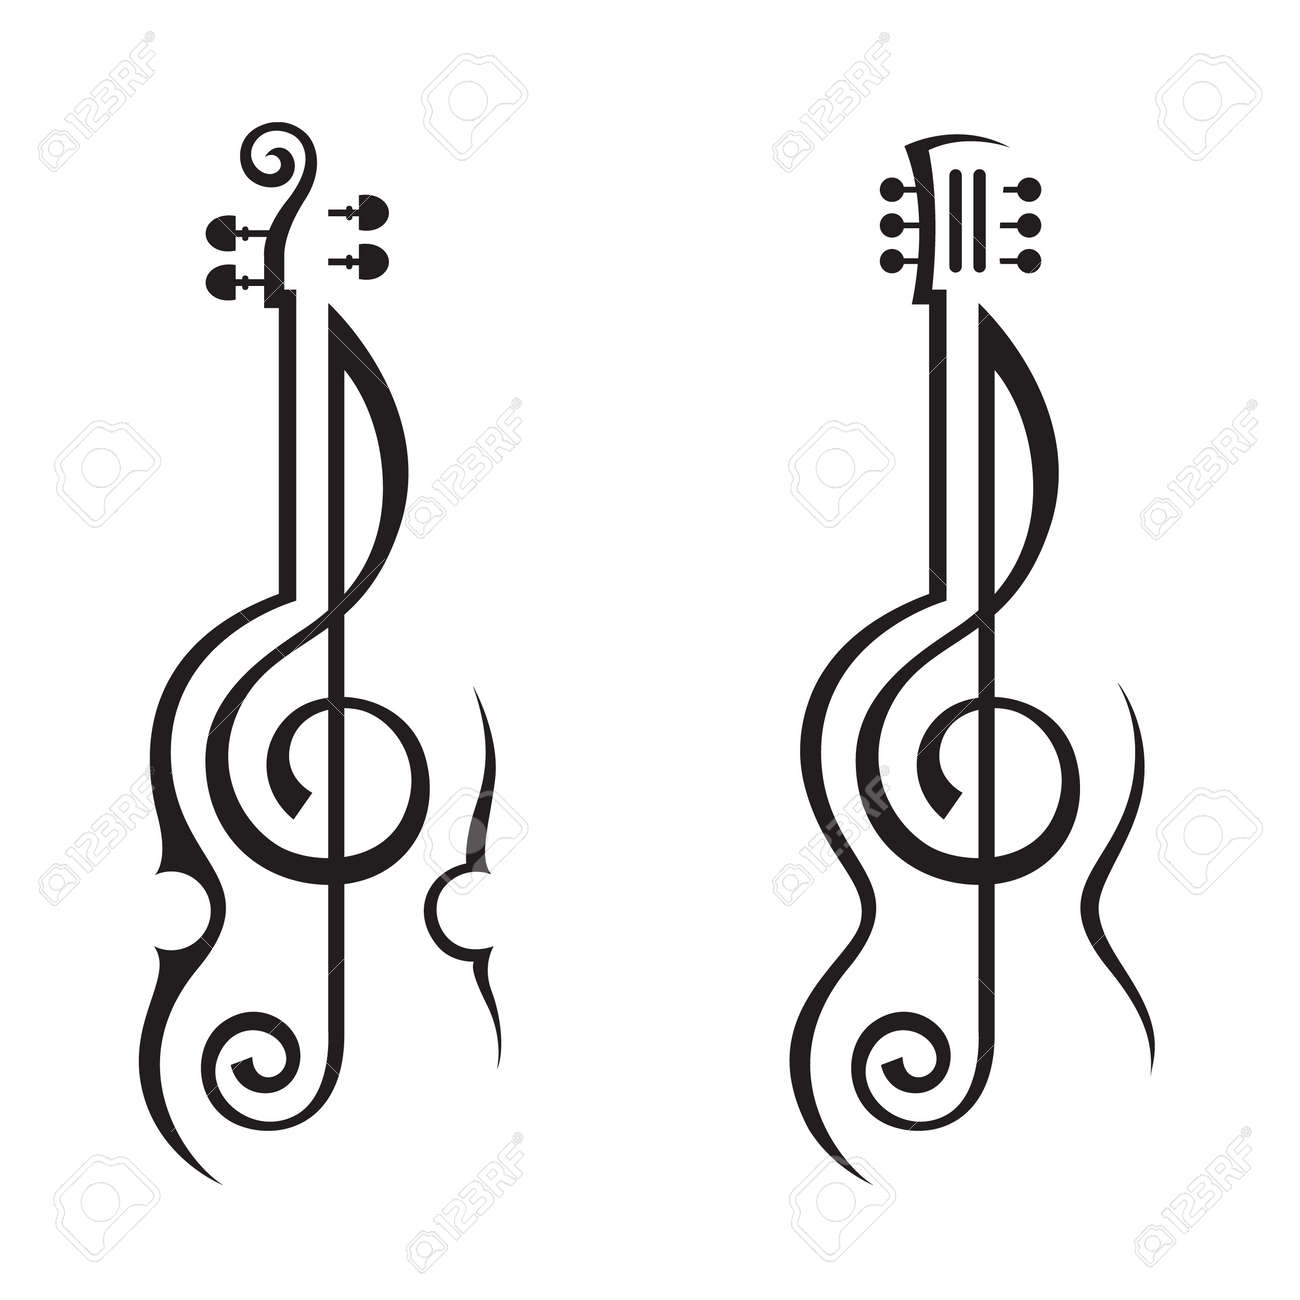 Violin, Guitar And Treble Clef Royalty Free Cliparts, Vectors, And ...